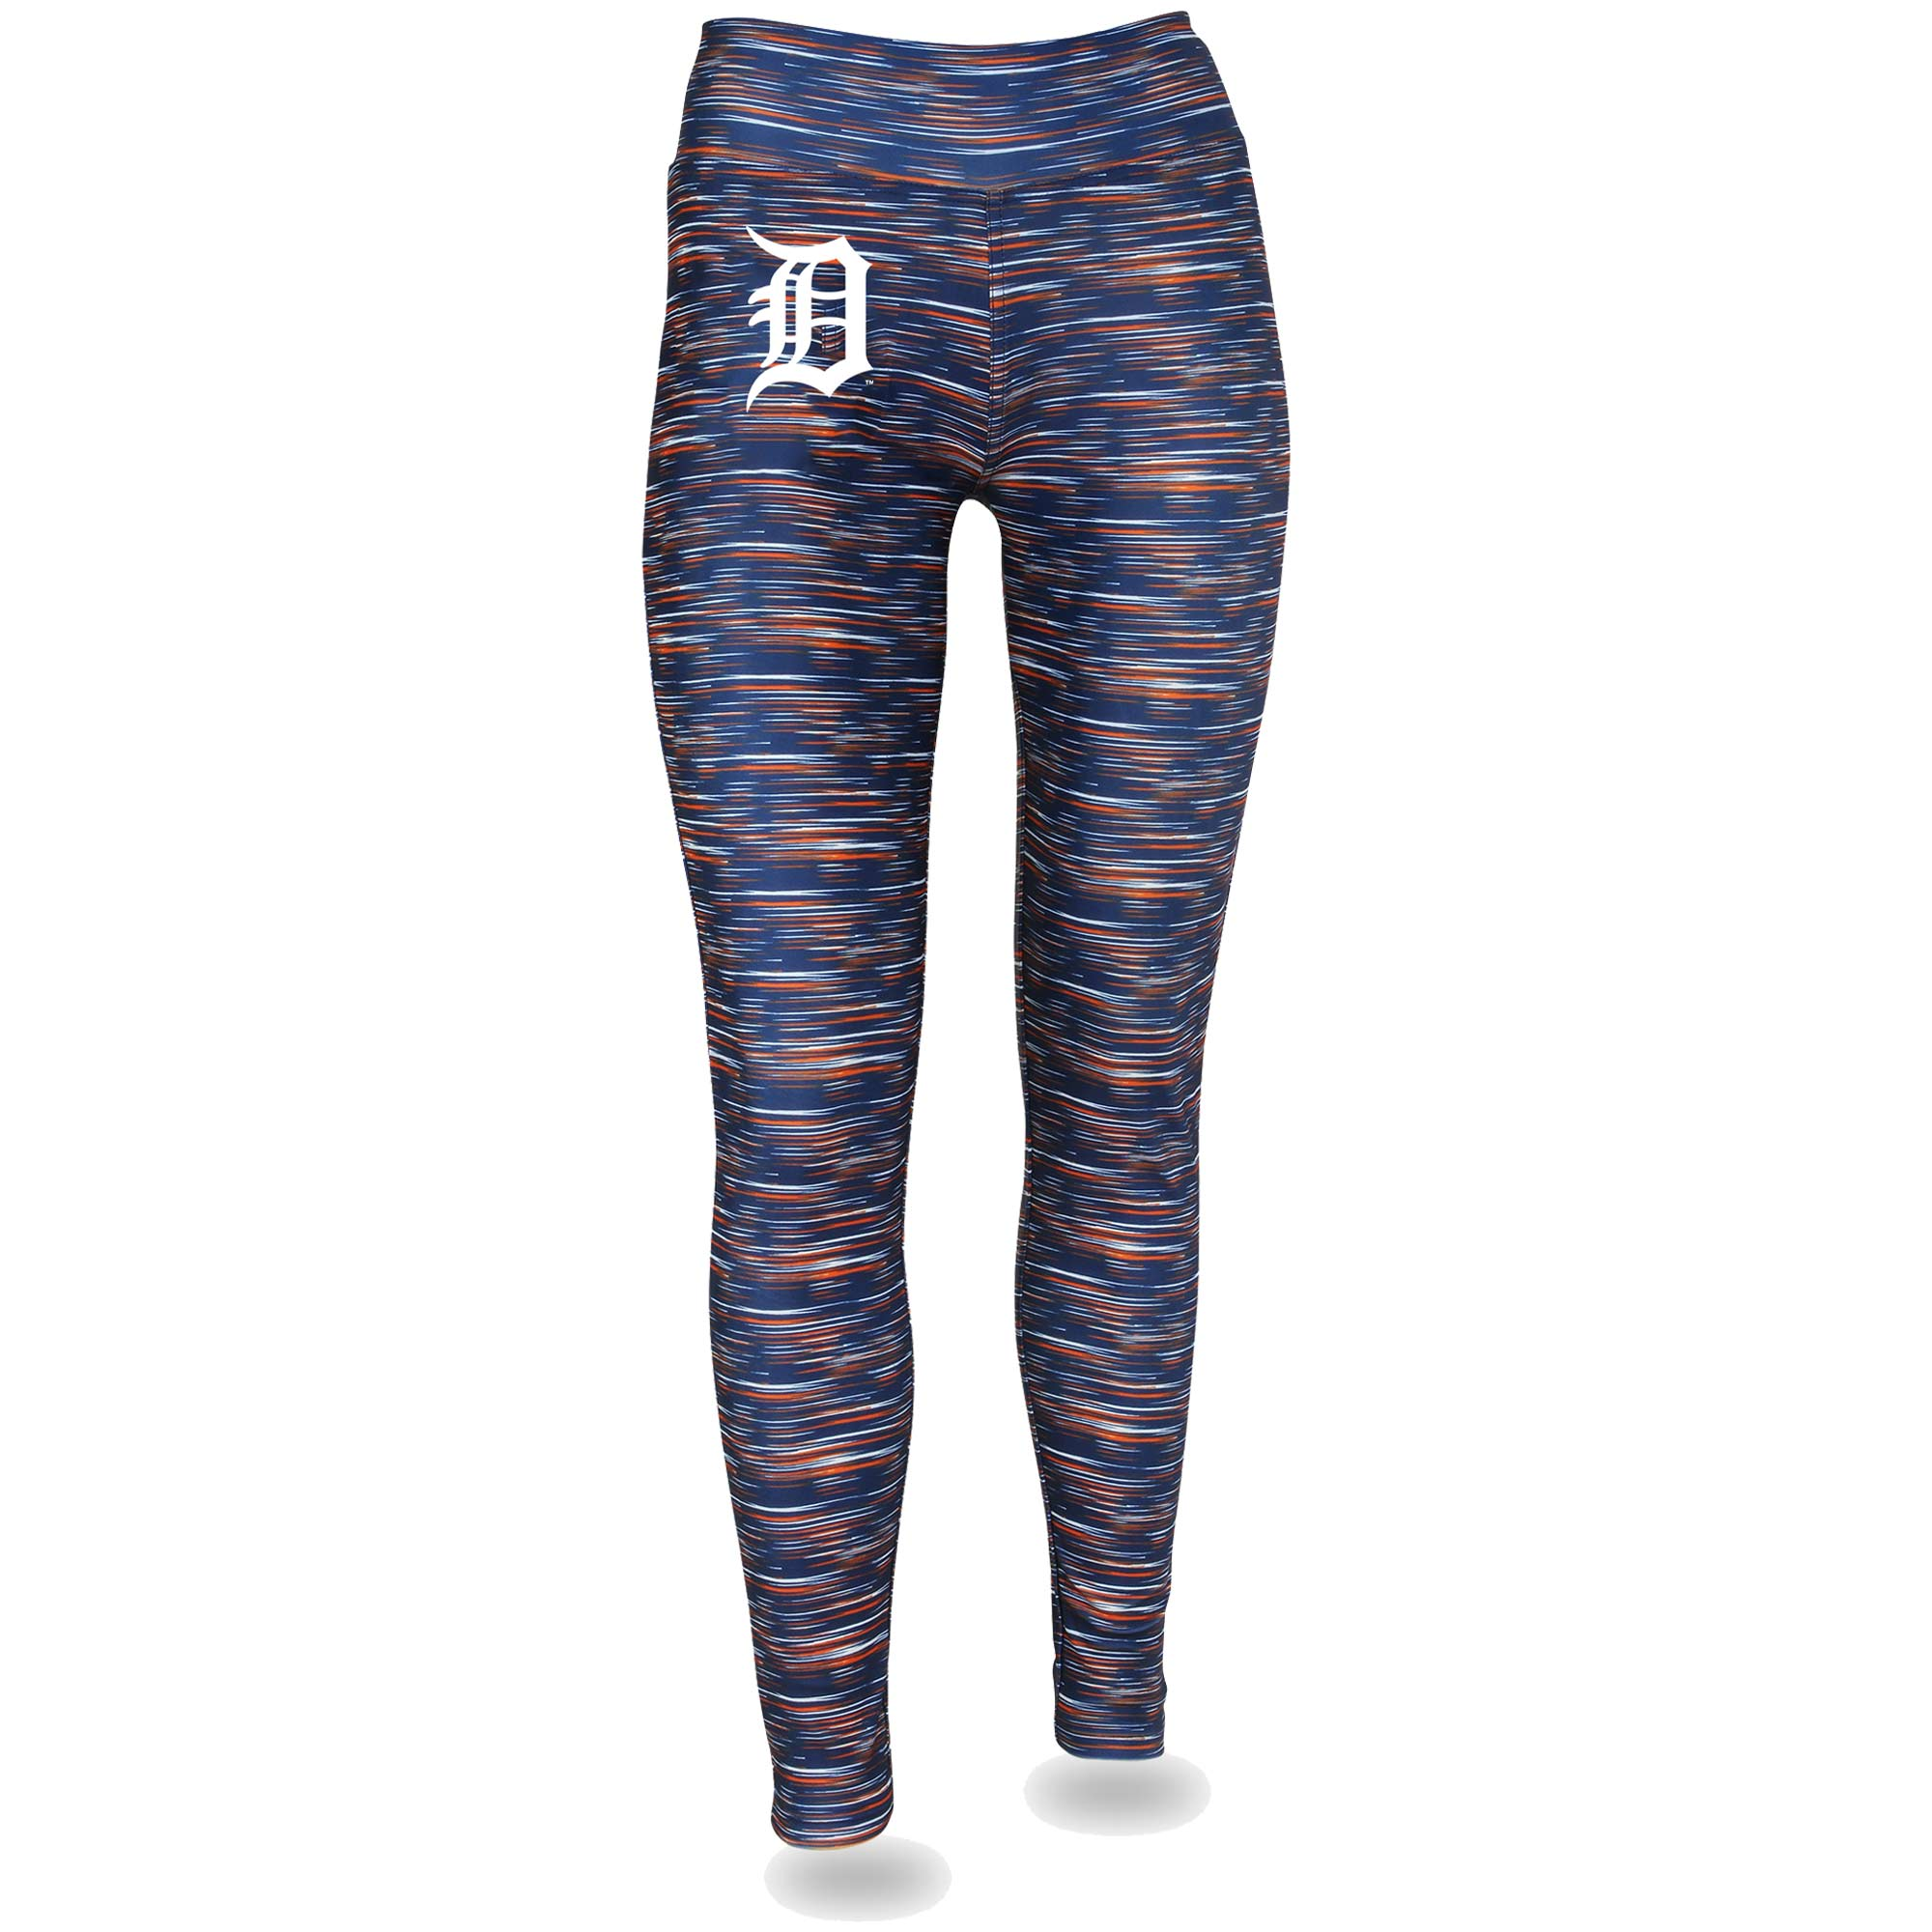 Women's Navy/Orange Detroit Tigers Space Dye Leggings